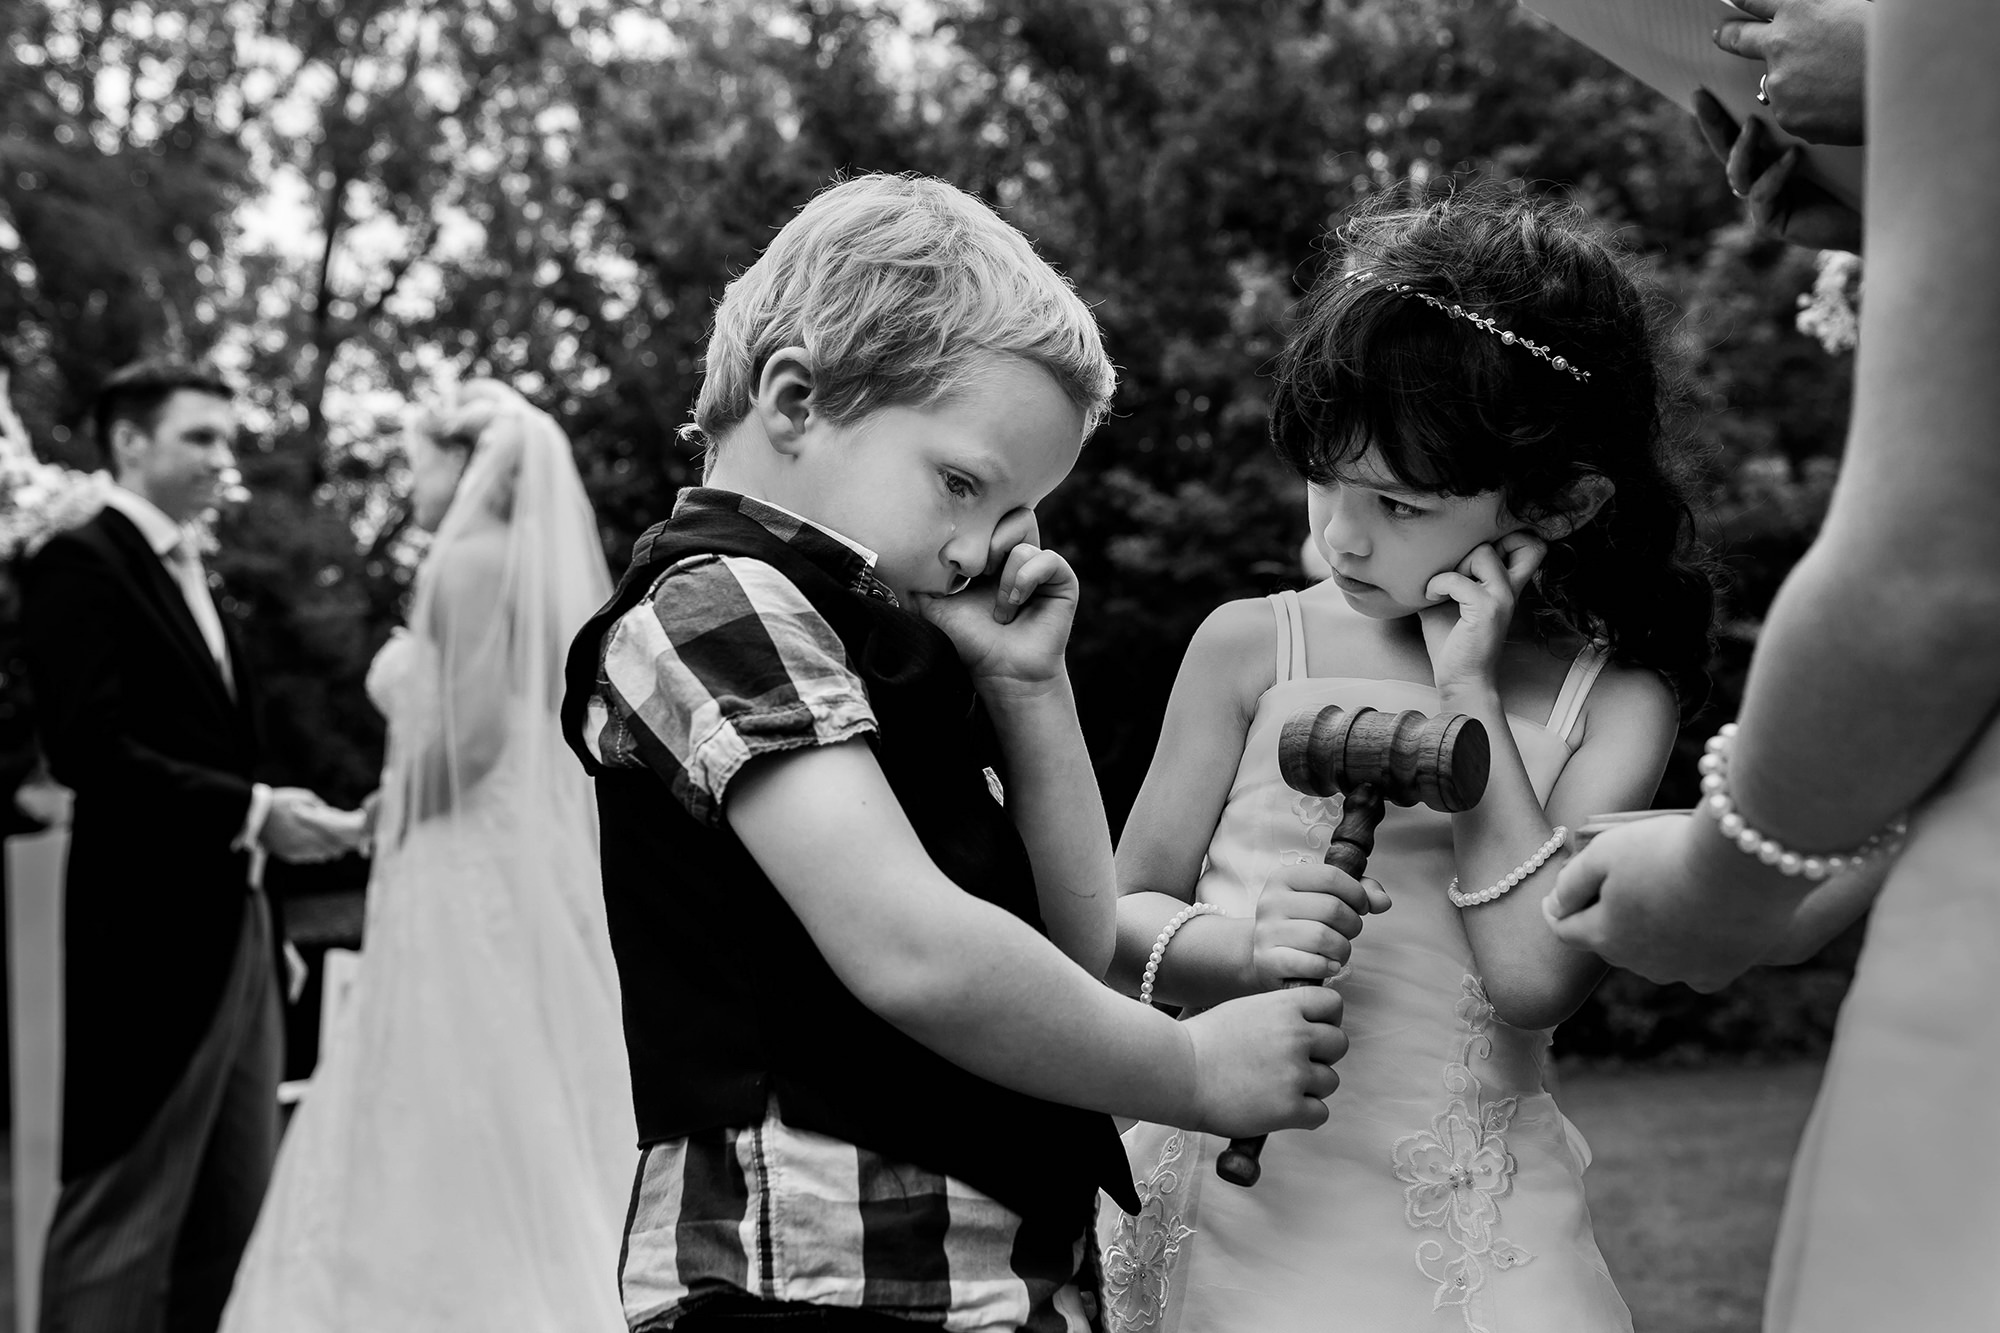 Little kids holding mallet with bride and groom in backgroung photo by Fotobelle: Isabelle Hattink